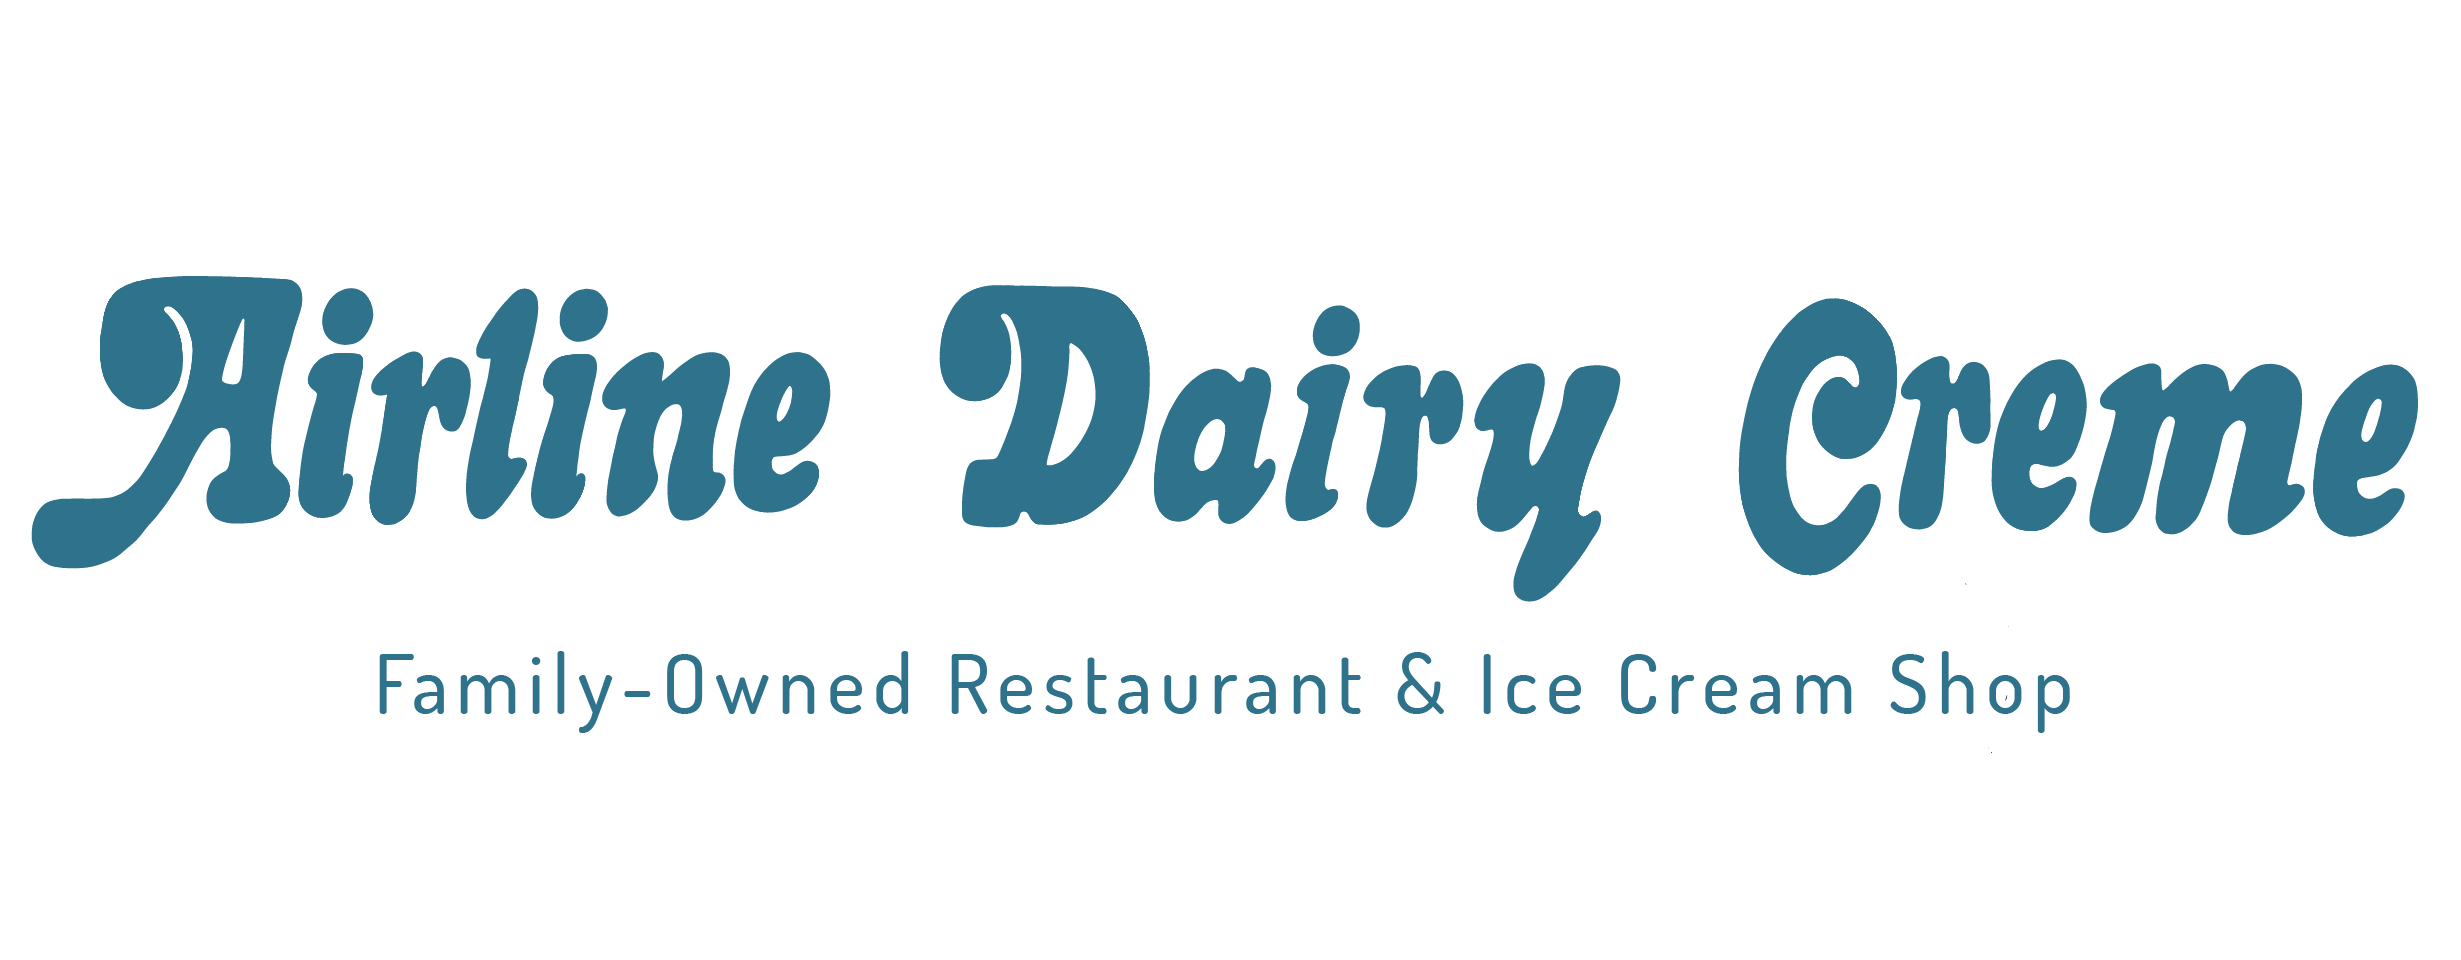 Airline Dairy Creme